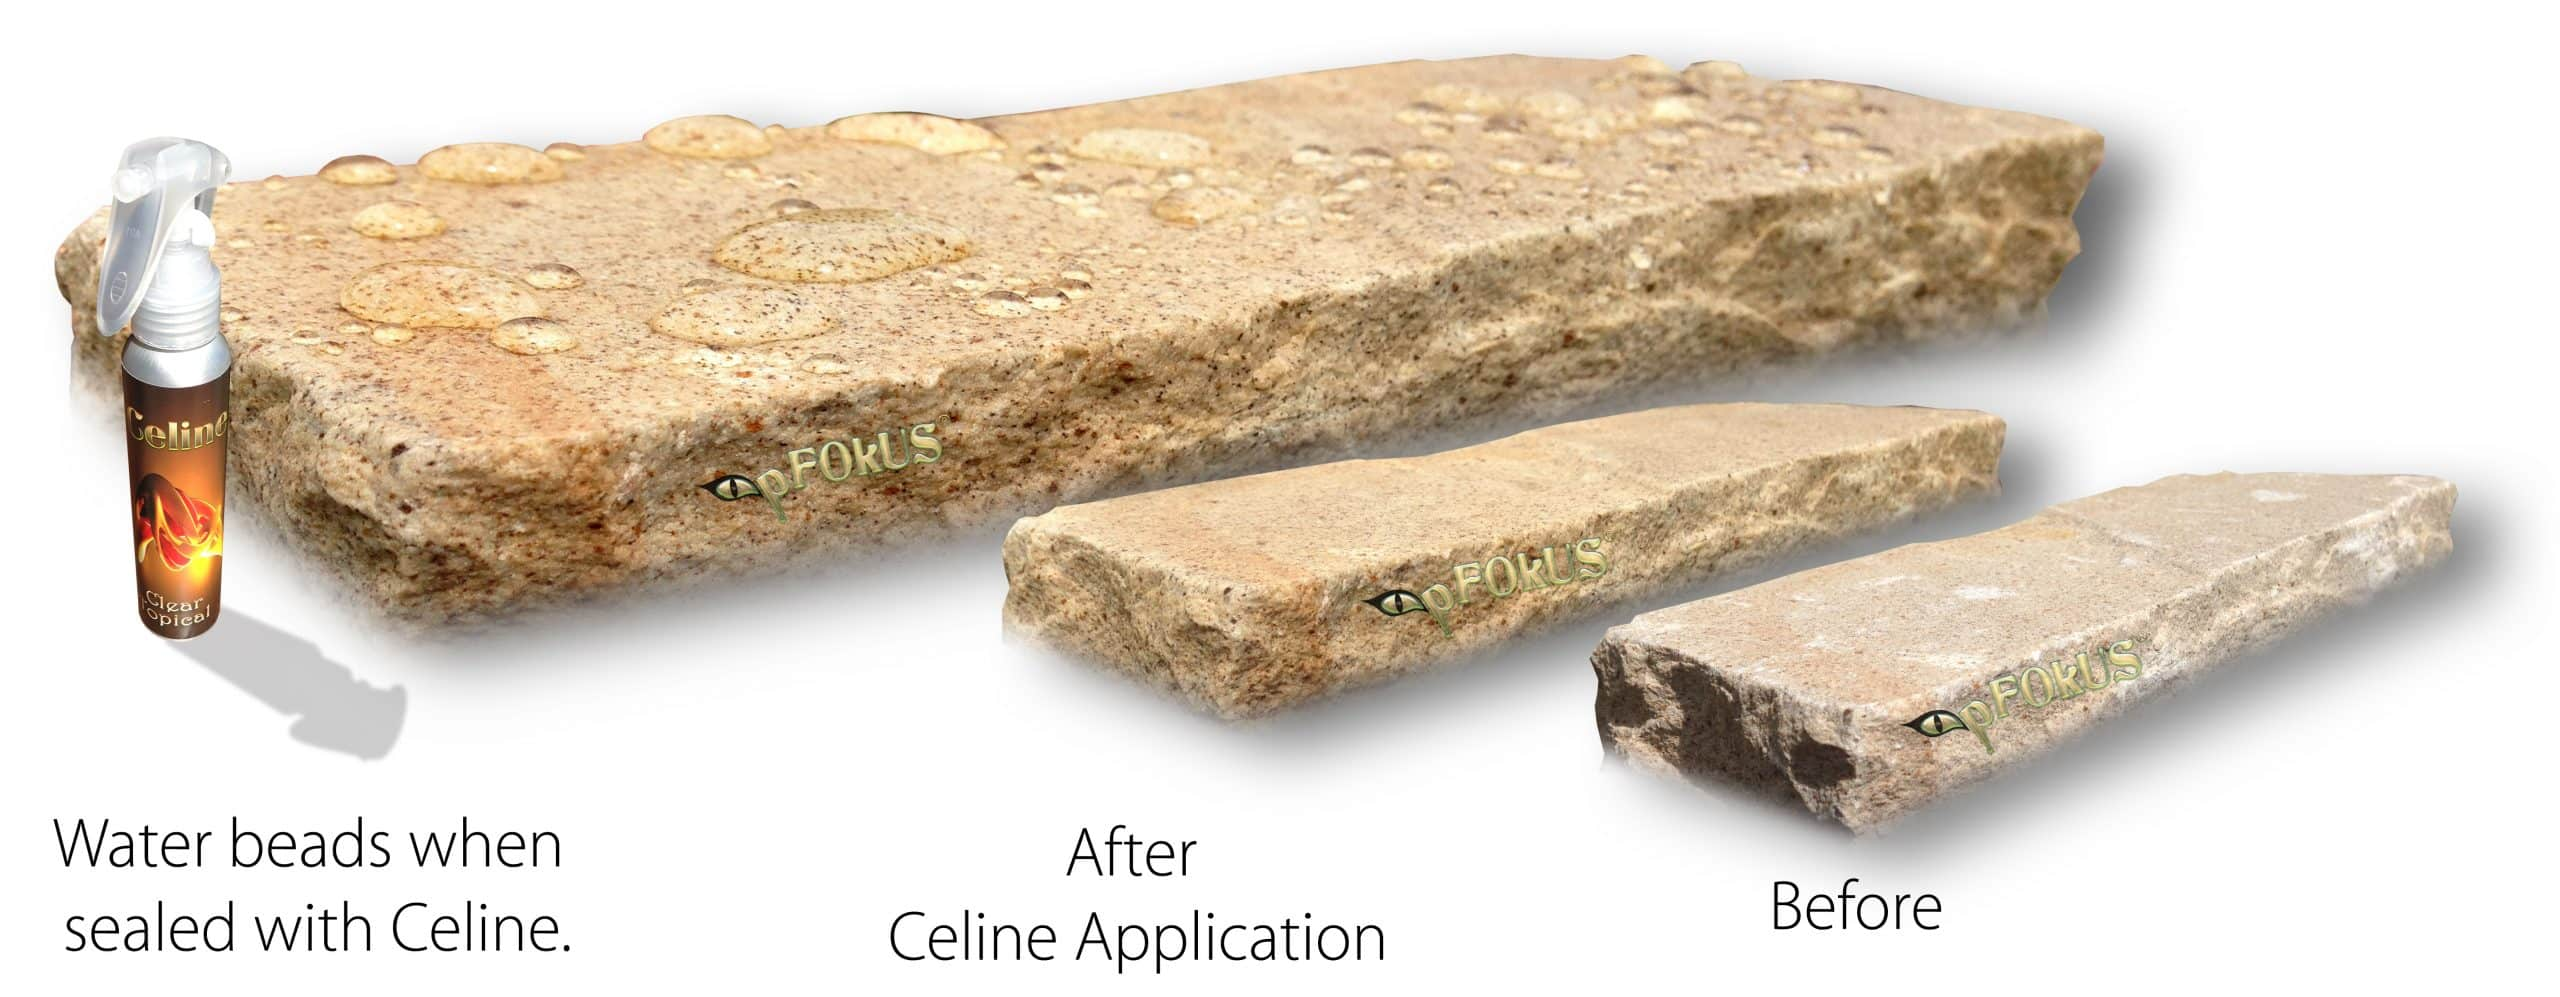 Celine Stone Grout Sealer